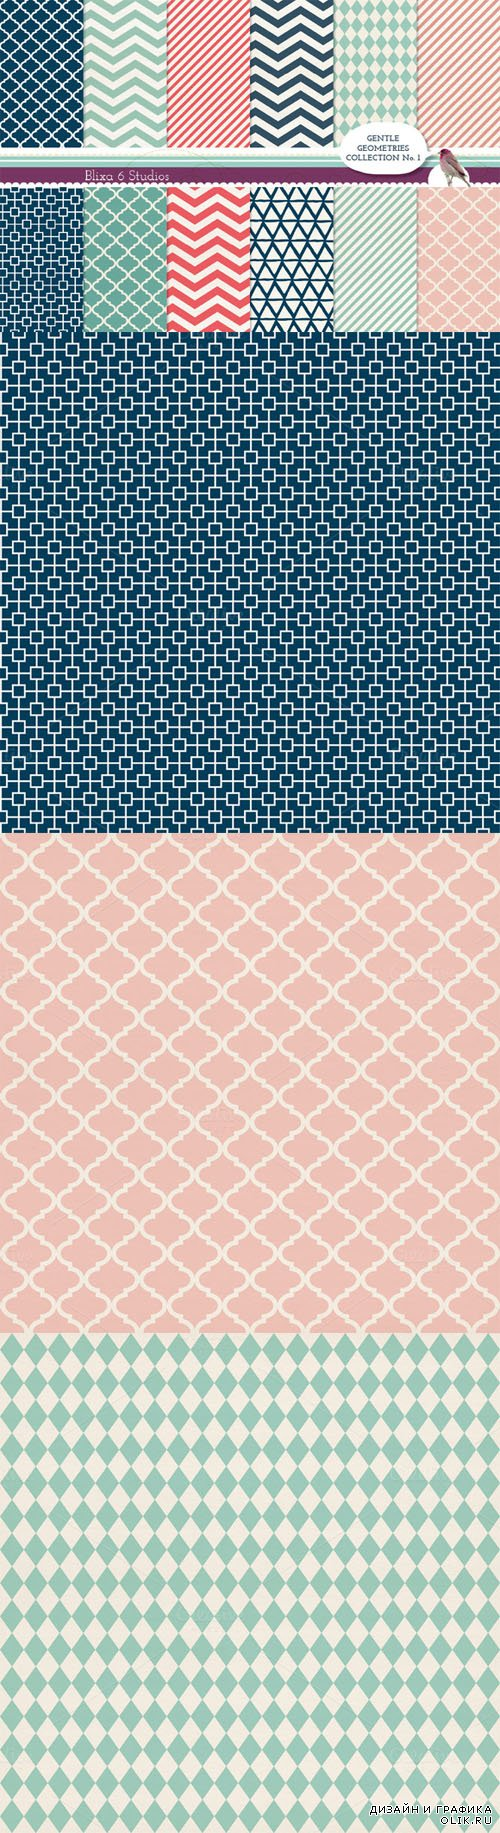 Creativemarket - Gentle Geometry Digital Patterns 26904